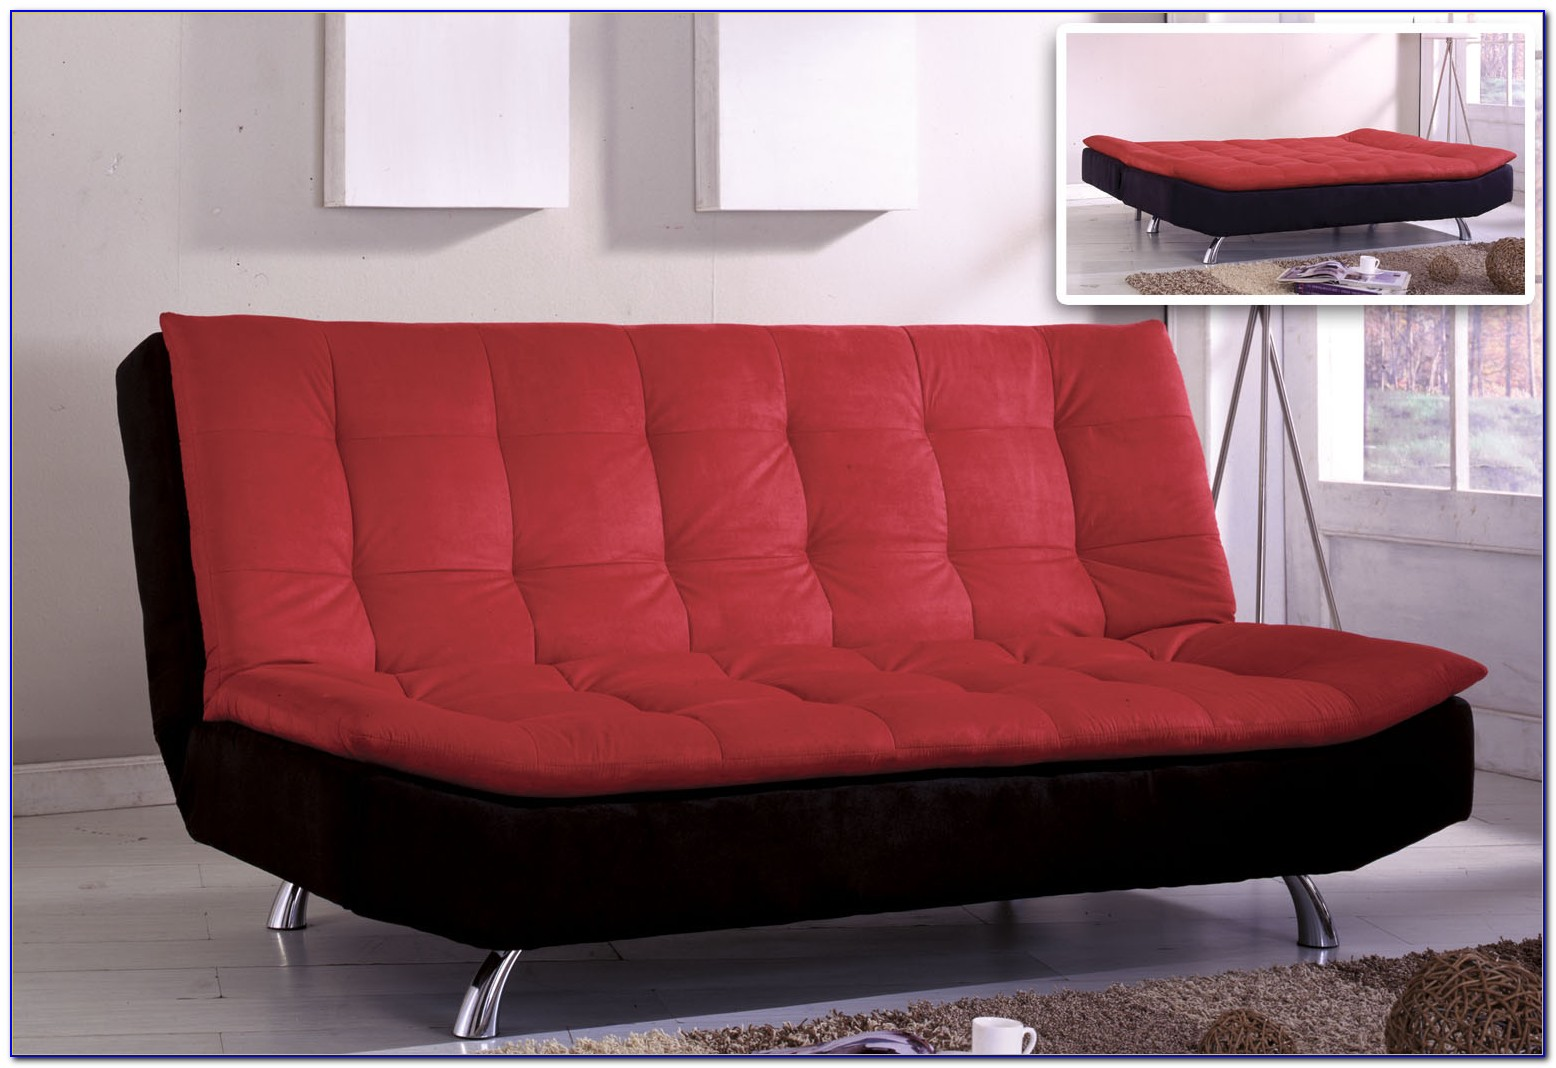 Futon Couch Bed Roller Hardware Kit